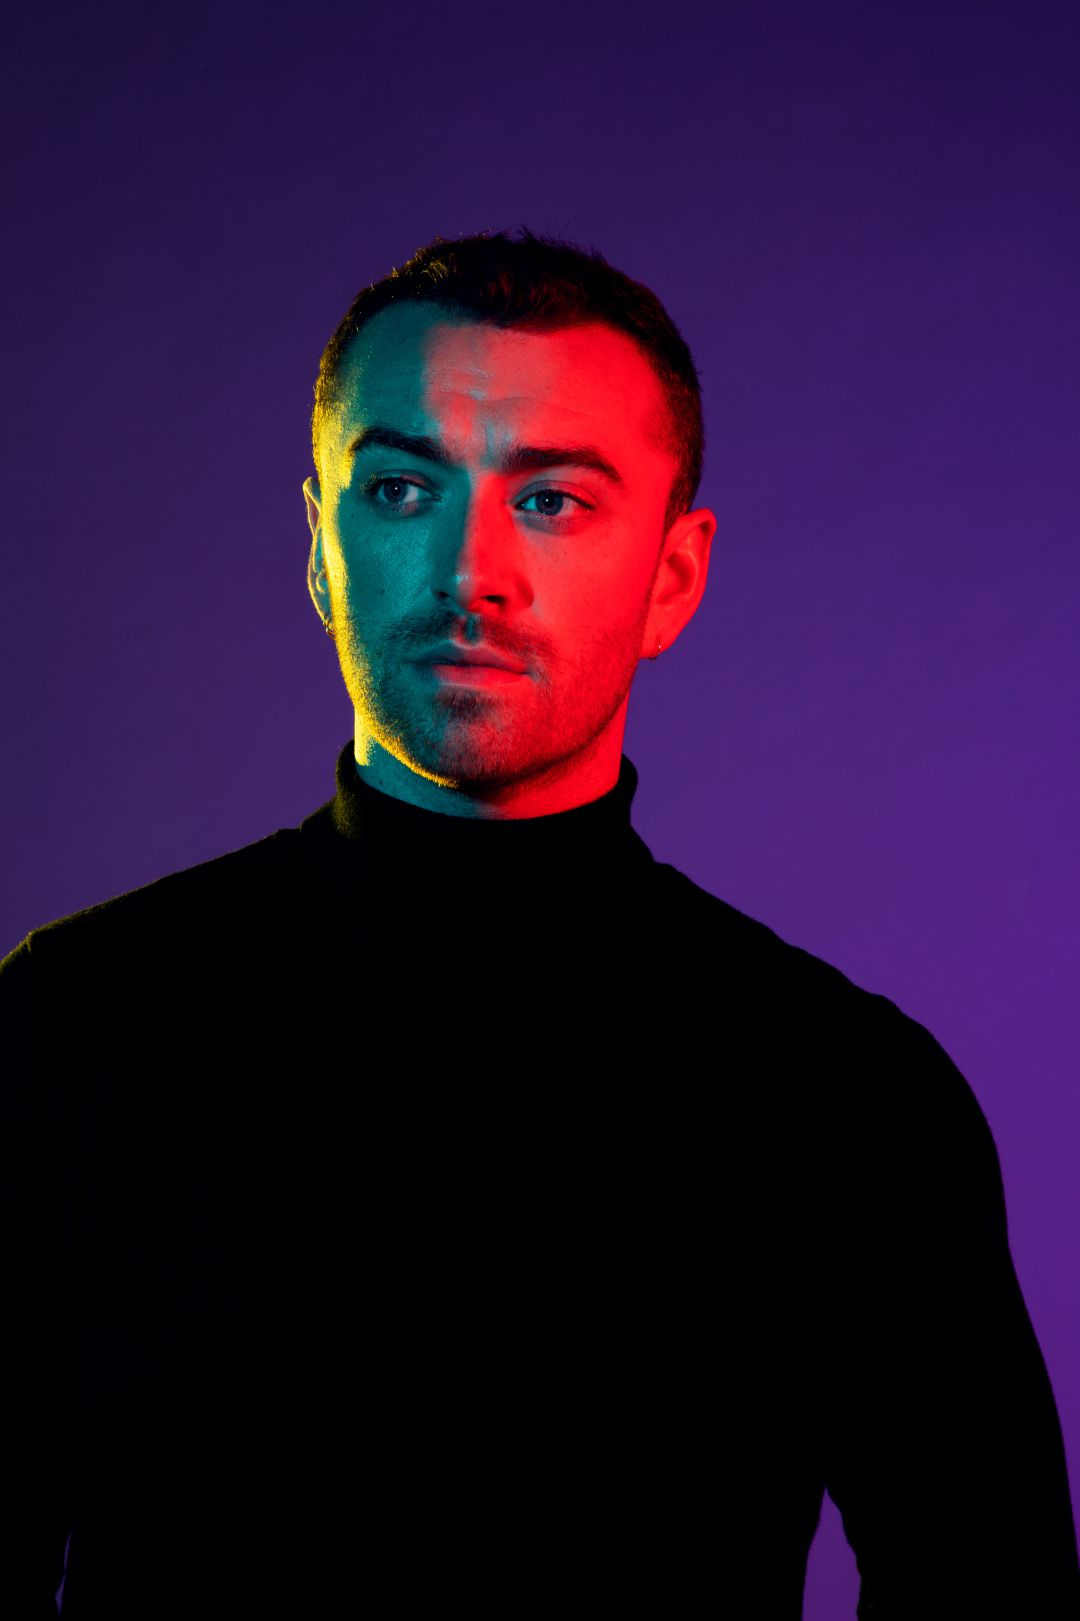 LOS40 Music Awards cierran el cartel más internacional con la incorporación de Sam Smith